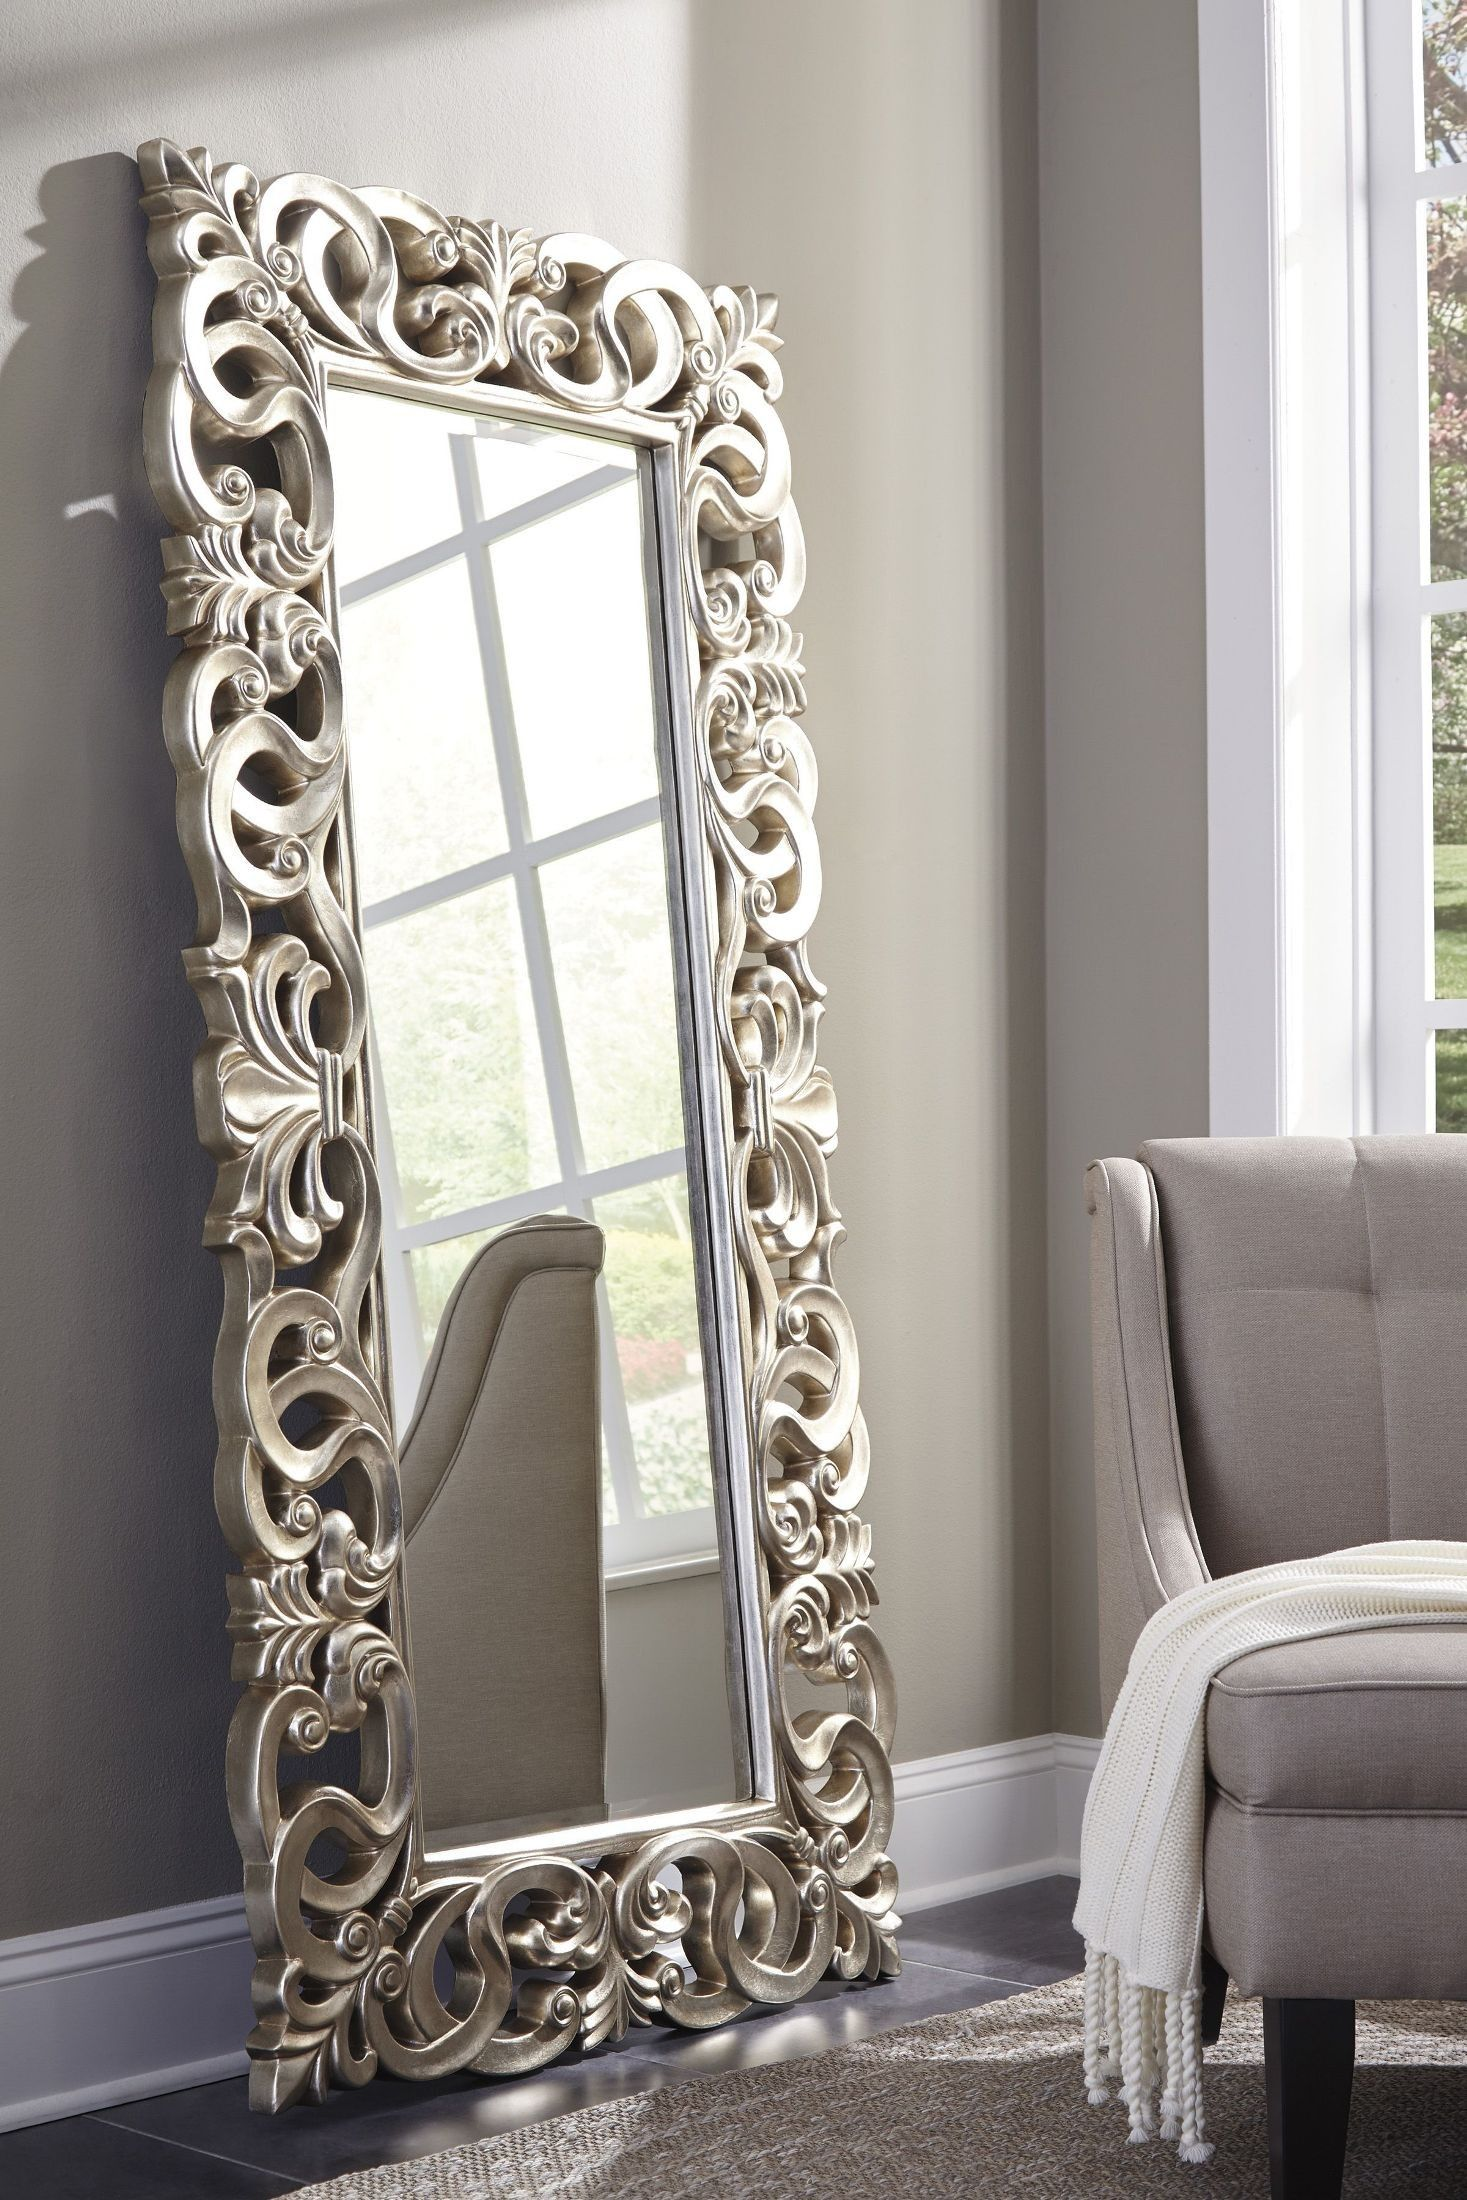 Lucia Antique Silver Accent Mirror | Accessories in 2019 | Home decor, Floor mirror, Mirror